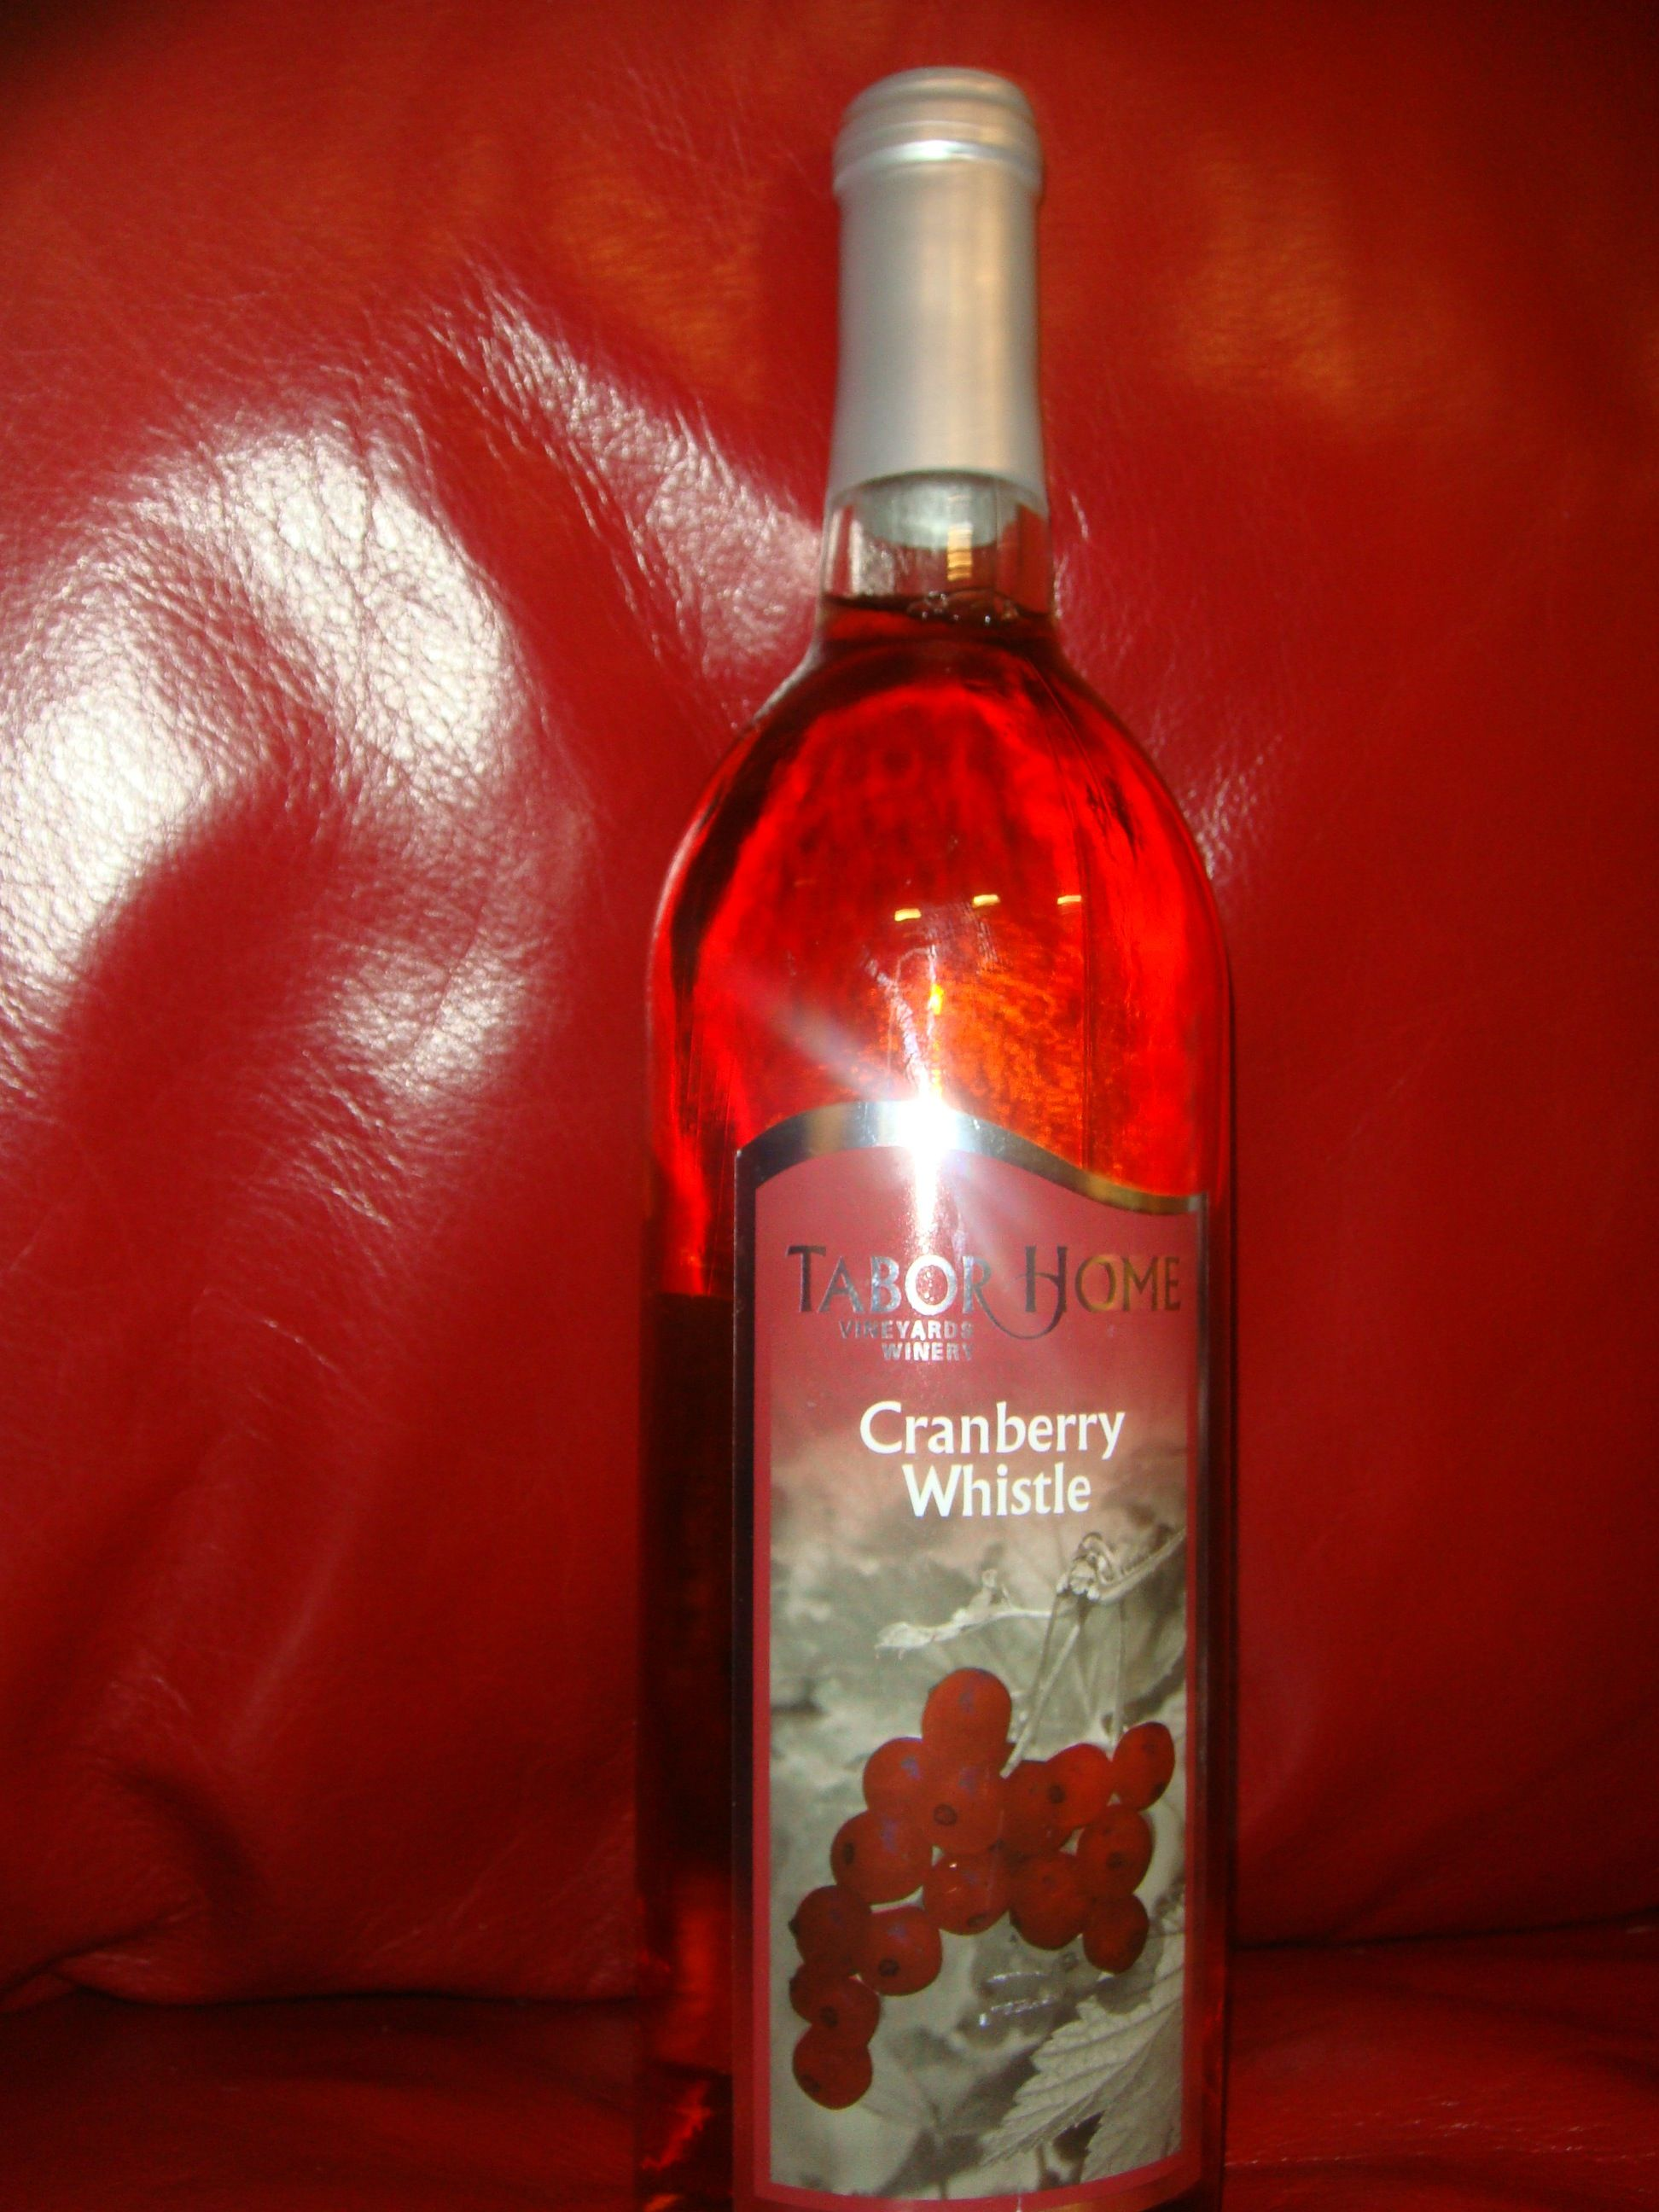 Cranberry Whistle By Tabor Home Vineyards Winery In Bladwin Ia Rose Wine Bottle Distillery Wine Bottle